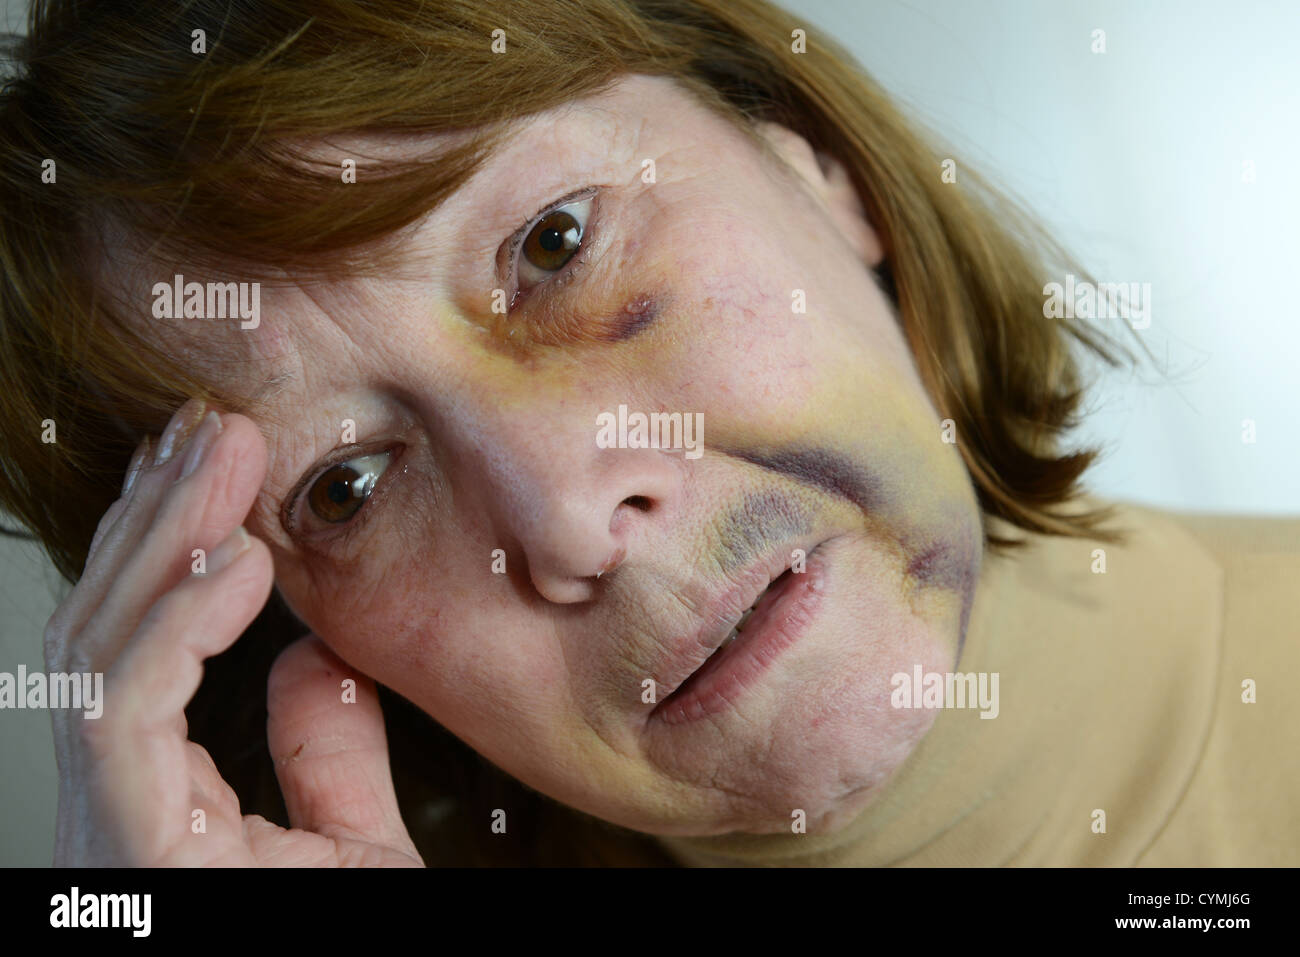 Battered and bruised woman portraying domestic violence - Stock Image